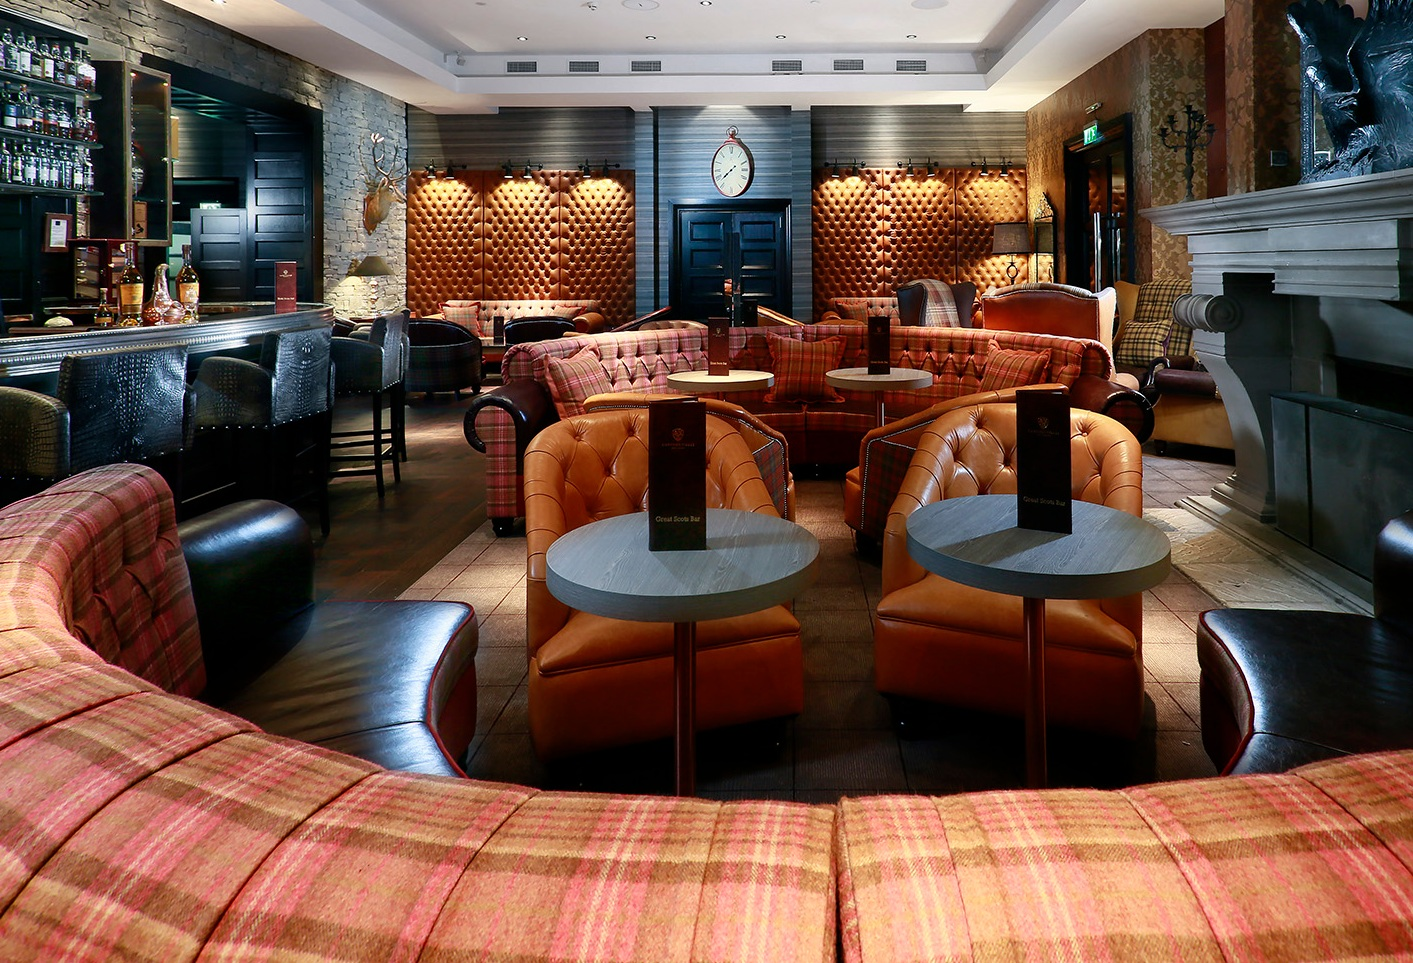 Bespoke Bqt Seating for Cameron Grill